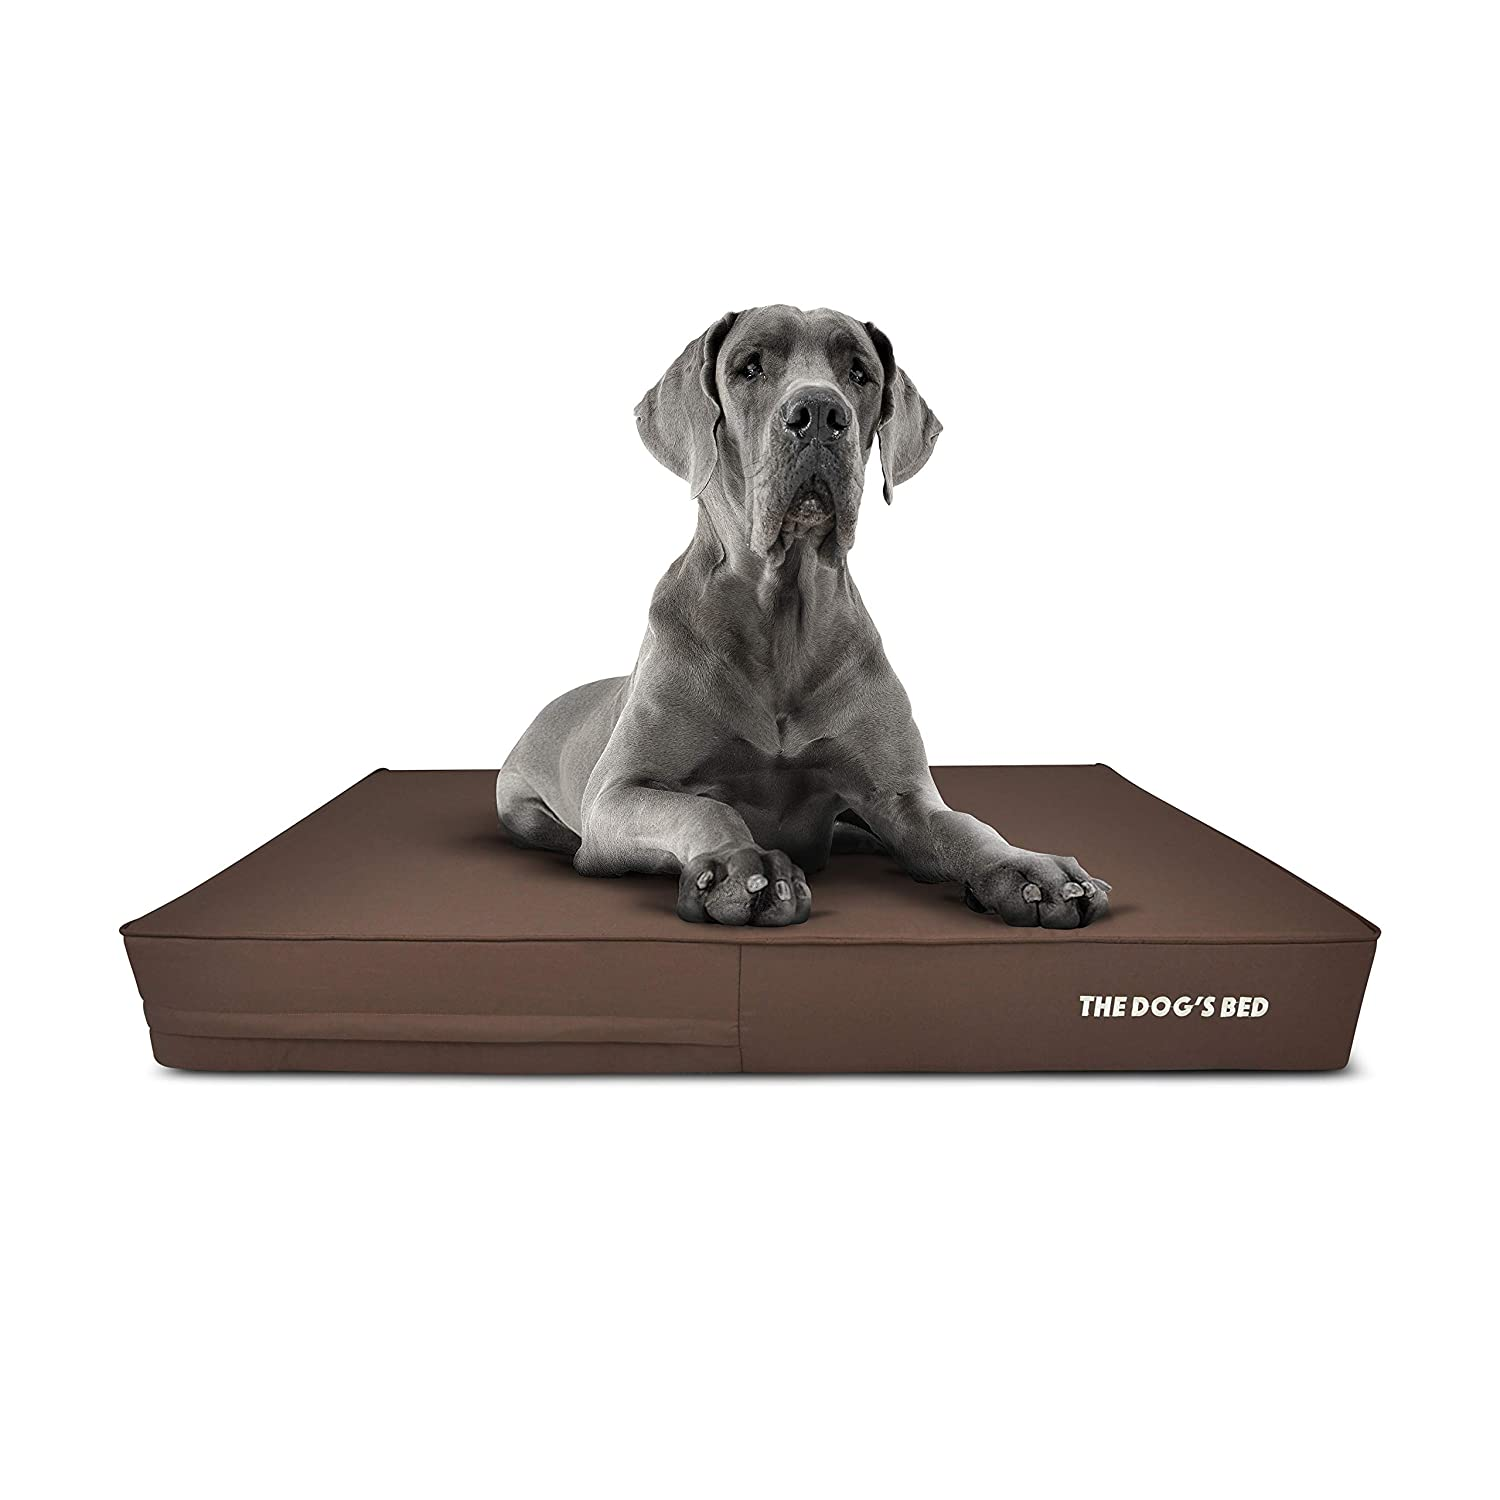 Brown with Brown Trim XXL Bed (54x36x6) Brown with Brown Trim XXL Bed (54x36x6) The Dog's Bed, Premium Plush Orthopedic Waterproof Memory Foam Dog Beds, 5 Sizes 8 colors  Eases Pet Arthritis, Hip Dysplasia & Post Op Pain, Quality Therapeutic & Supportive